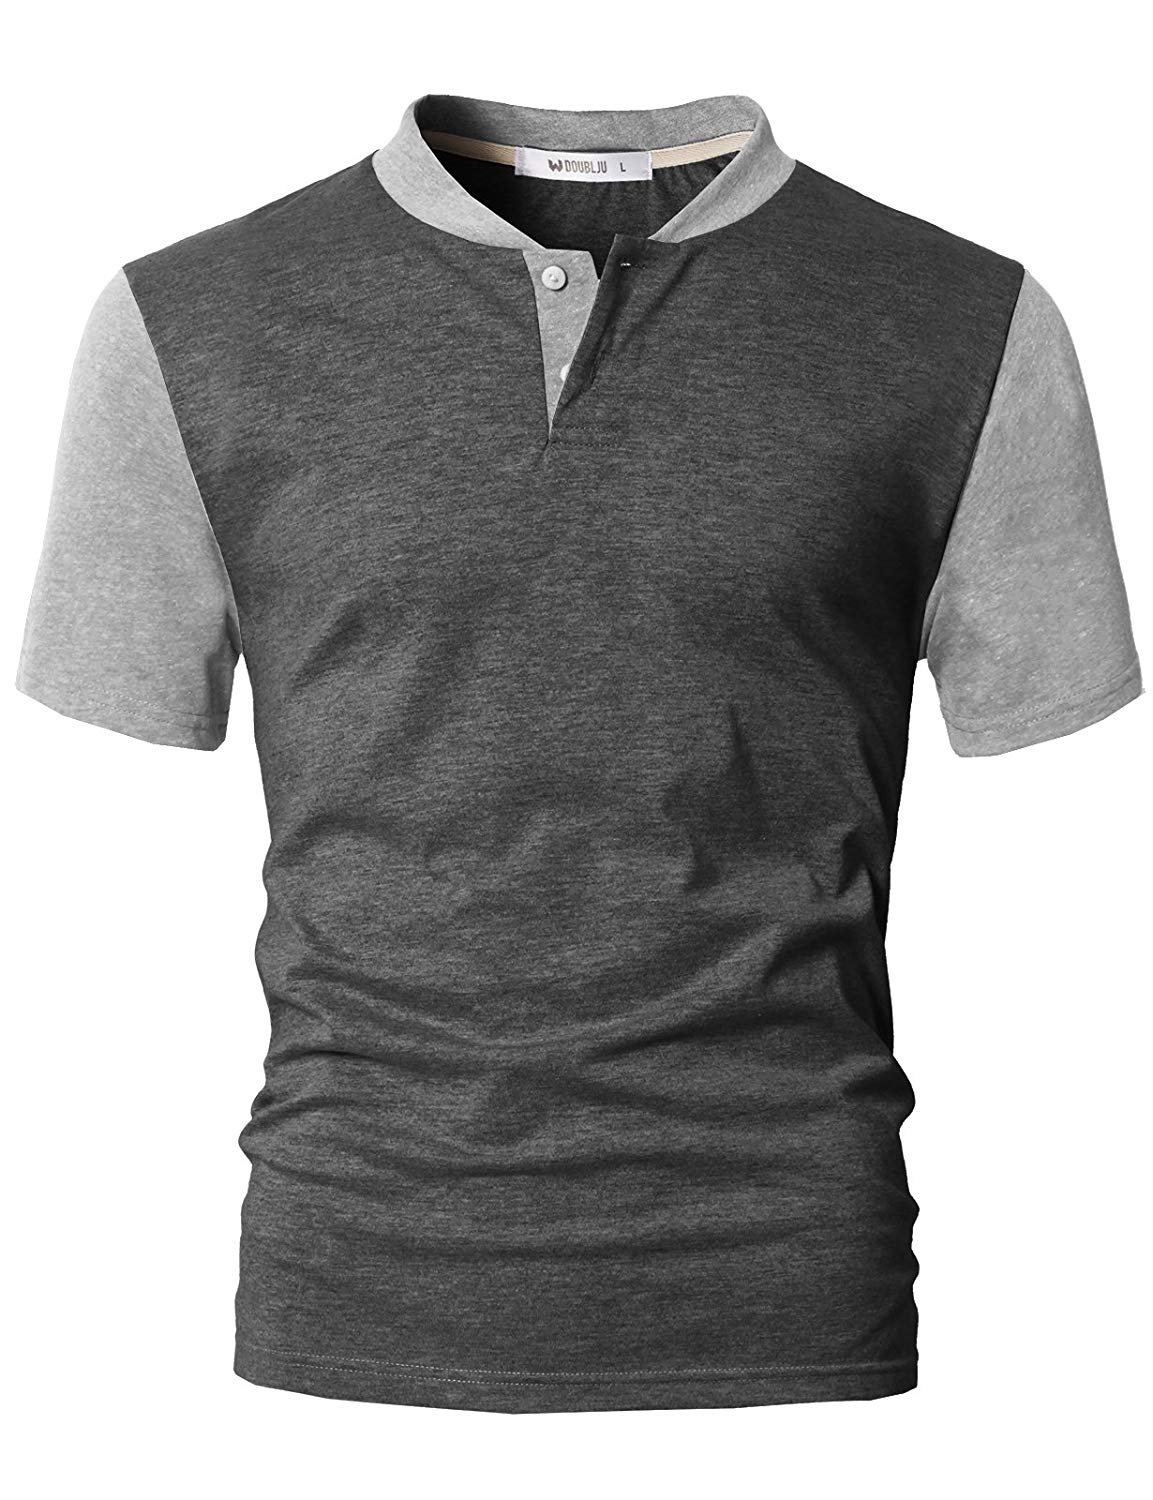 c9c5f02c Cheap Henley Shirt Style, find Henley Shirt Style deals on line at ...